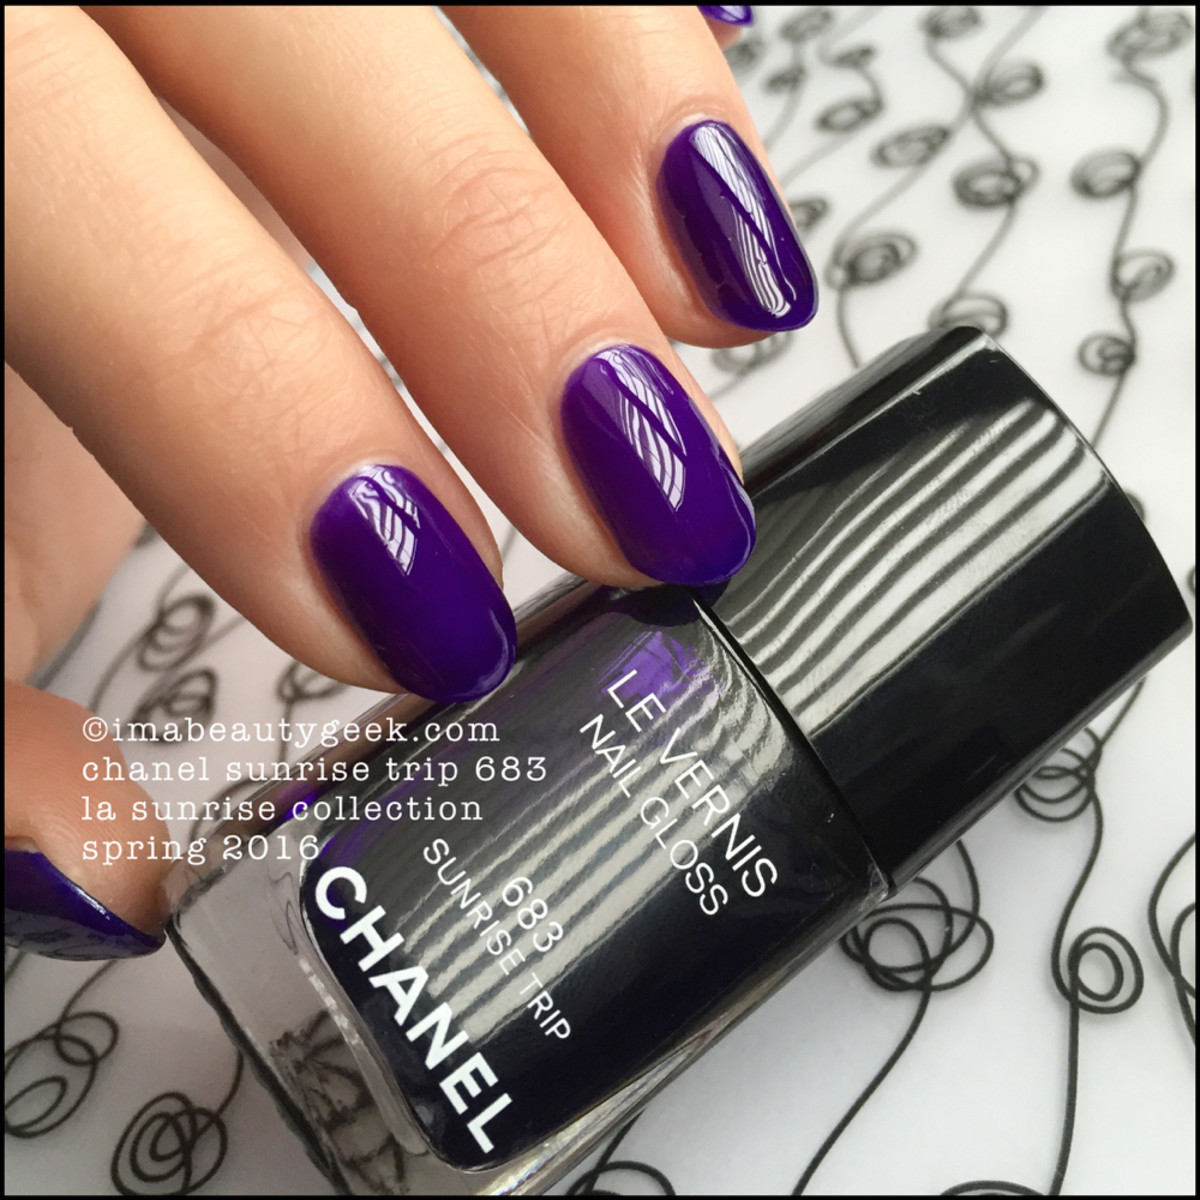 Chanel Sunrise Trip Nail Gloss 683_Chanel LA Sunrise Collection 2016